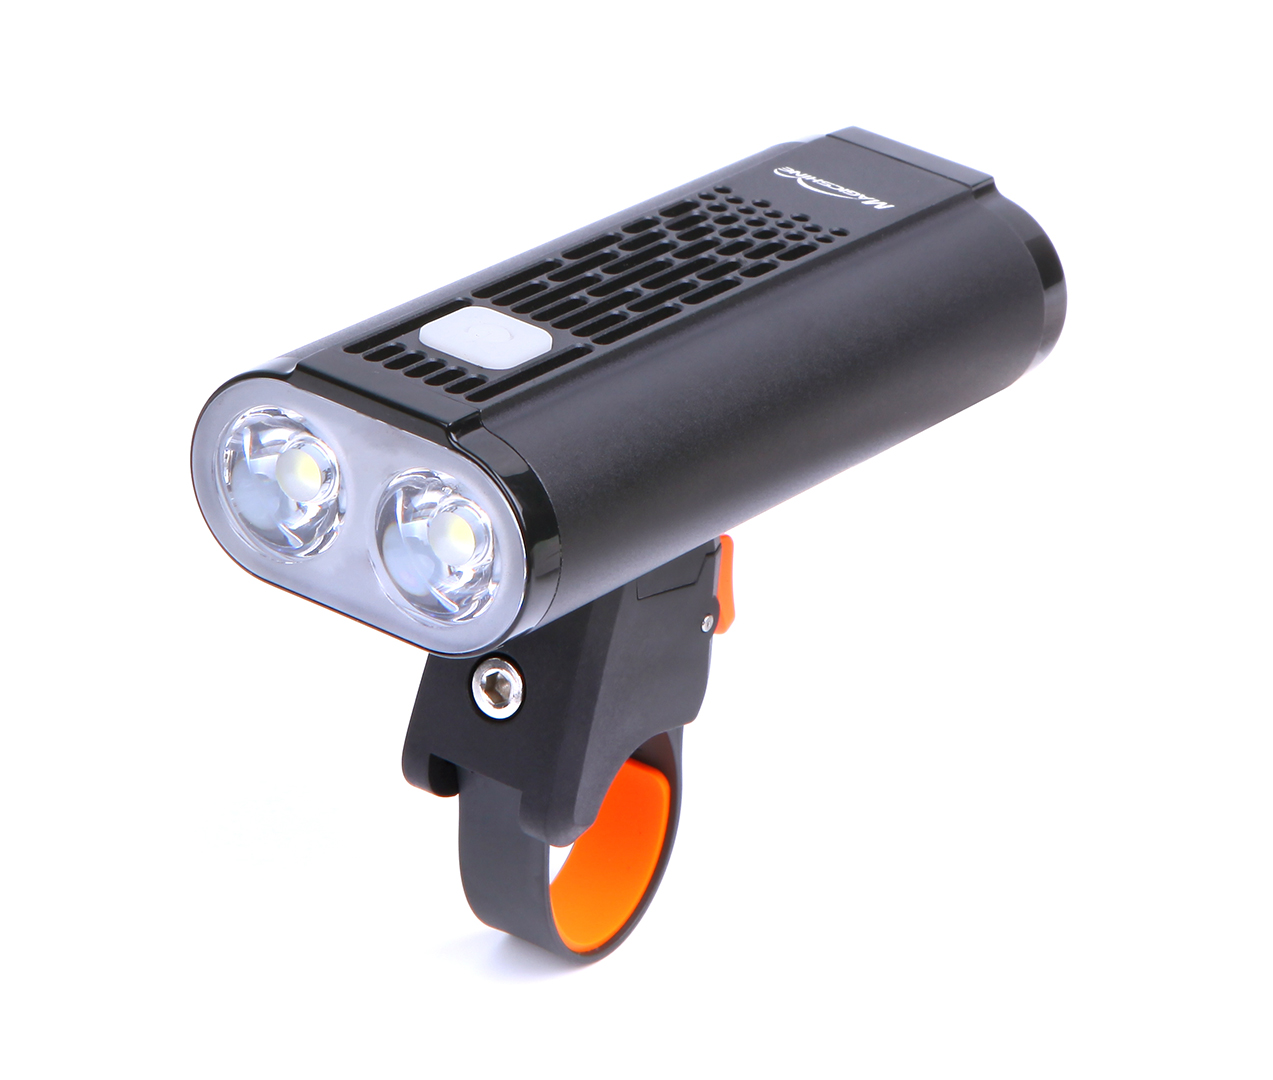 magicshine Monteer 1400 USB Bicycle Light Battery can be freely removed